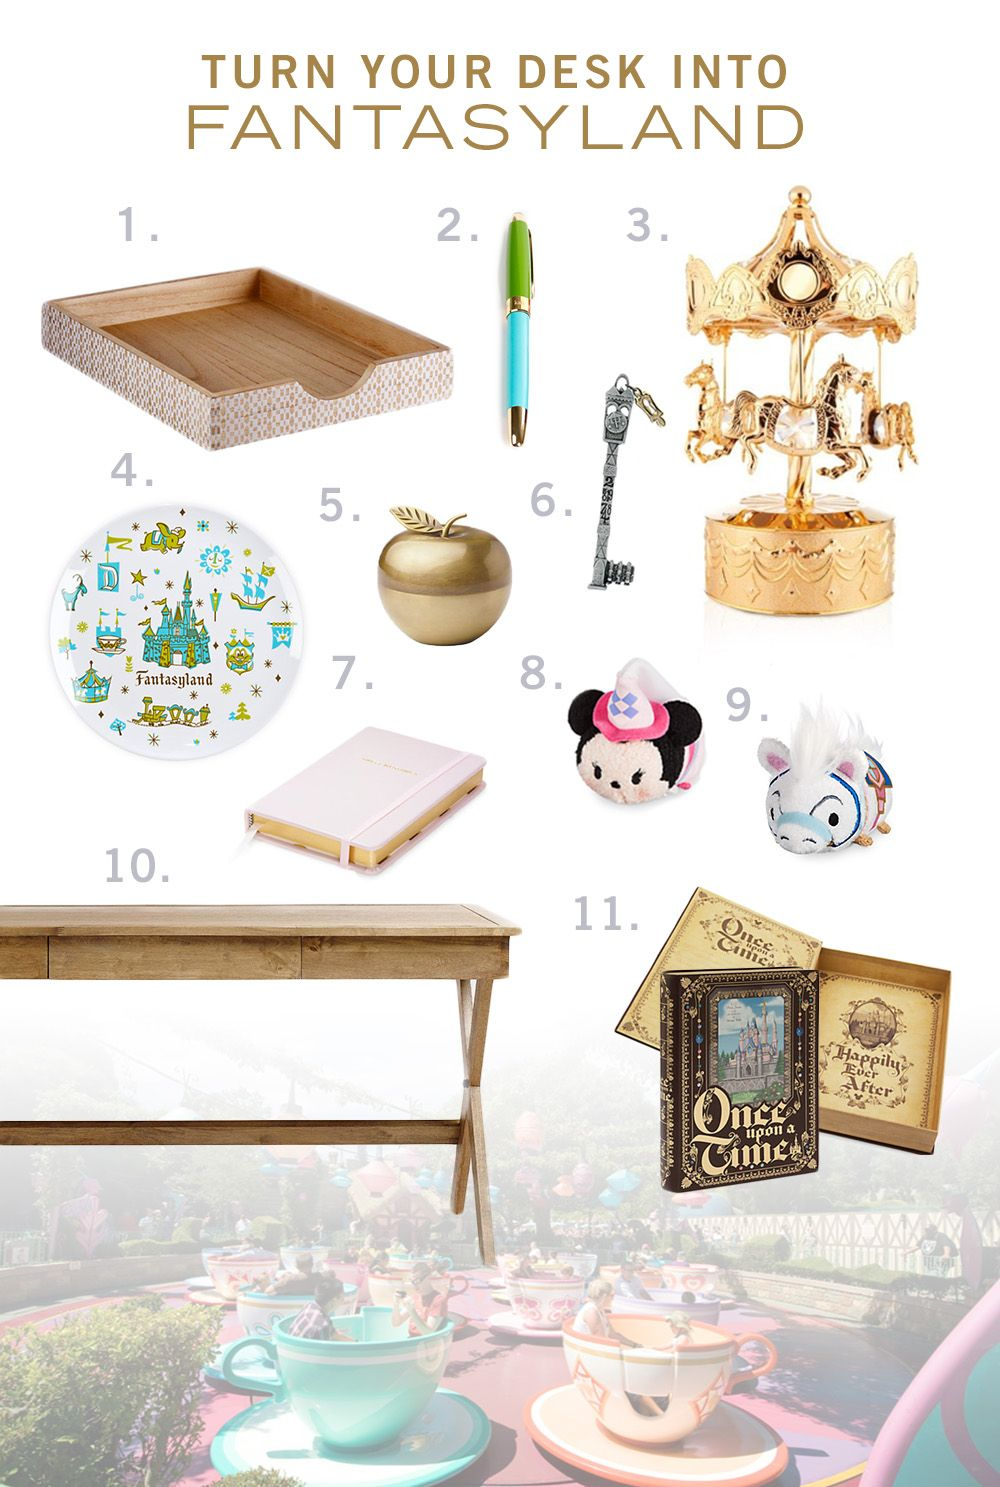 Best Turn Your Desk Into Fantasyland Anything And Everything This Month